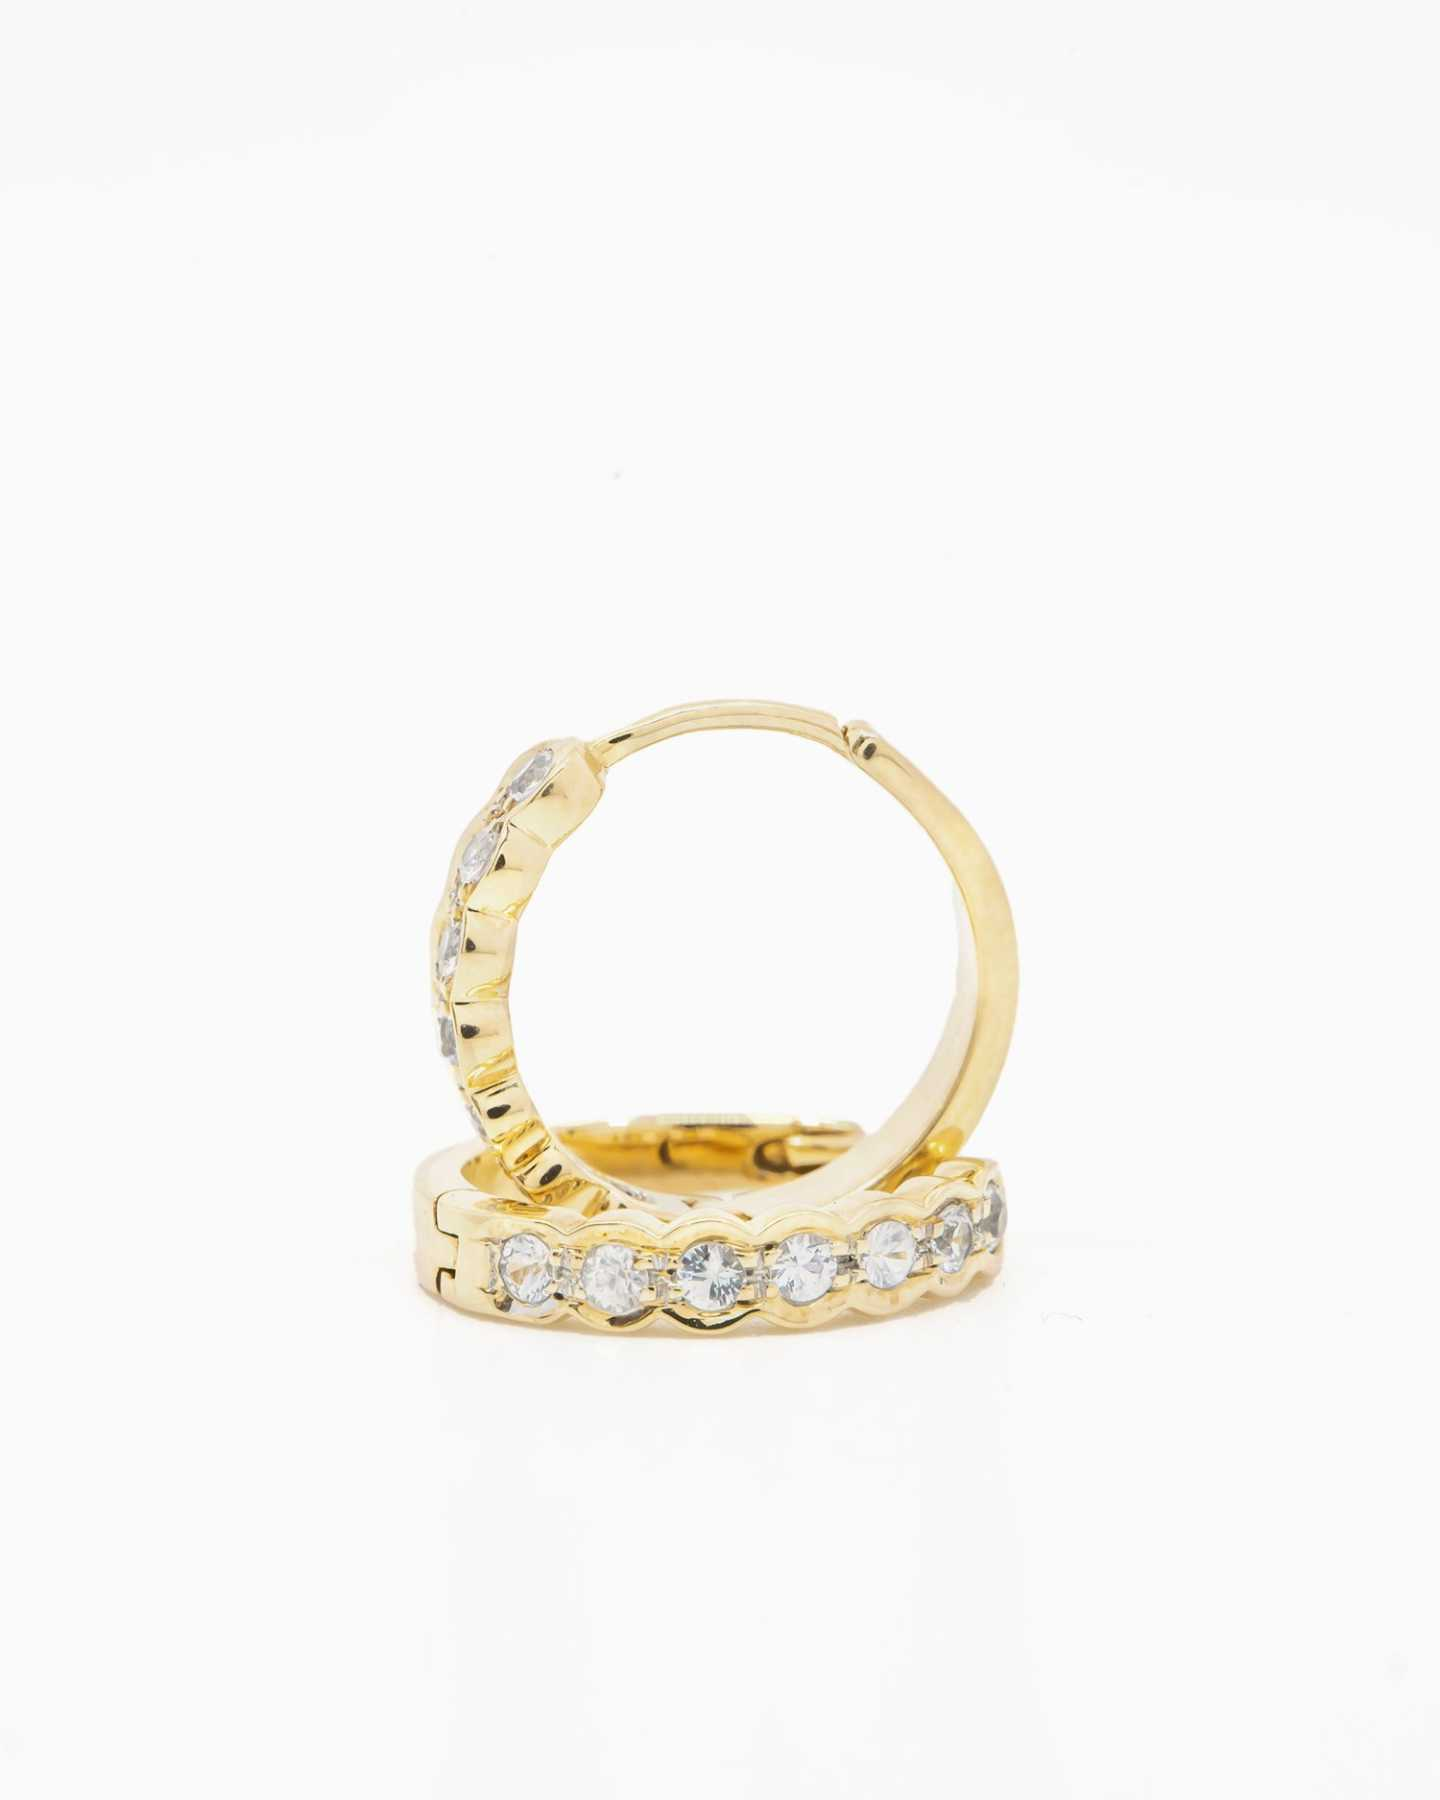 White Sapphire Huggie Earrings - Gold Vermeil - 2